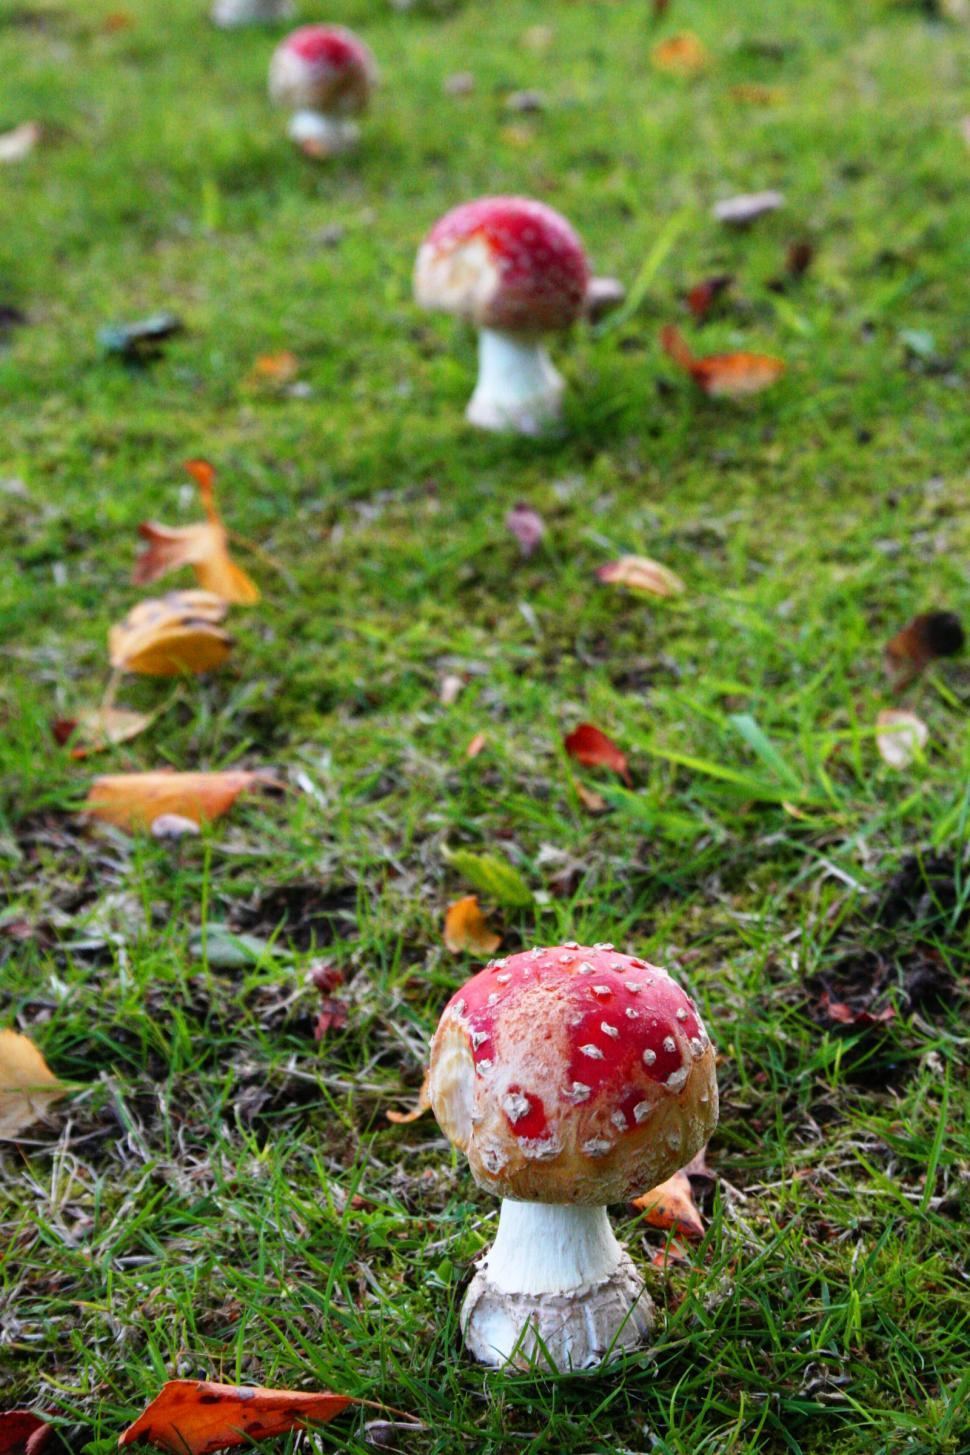 Download Free Stock HD Photo of Toadstools in the garden Online